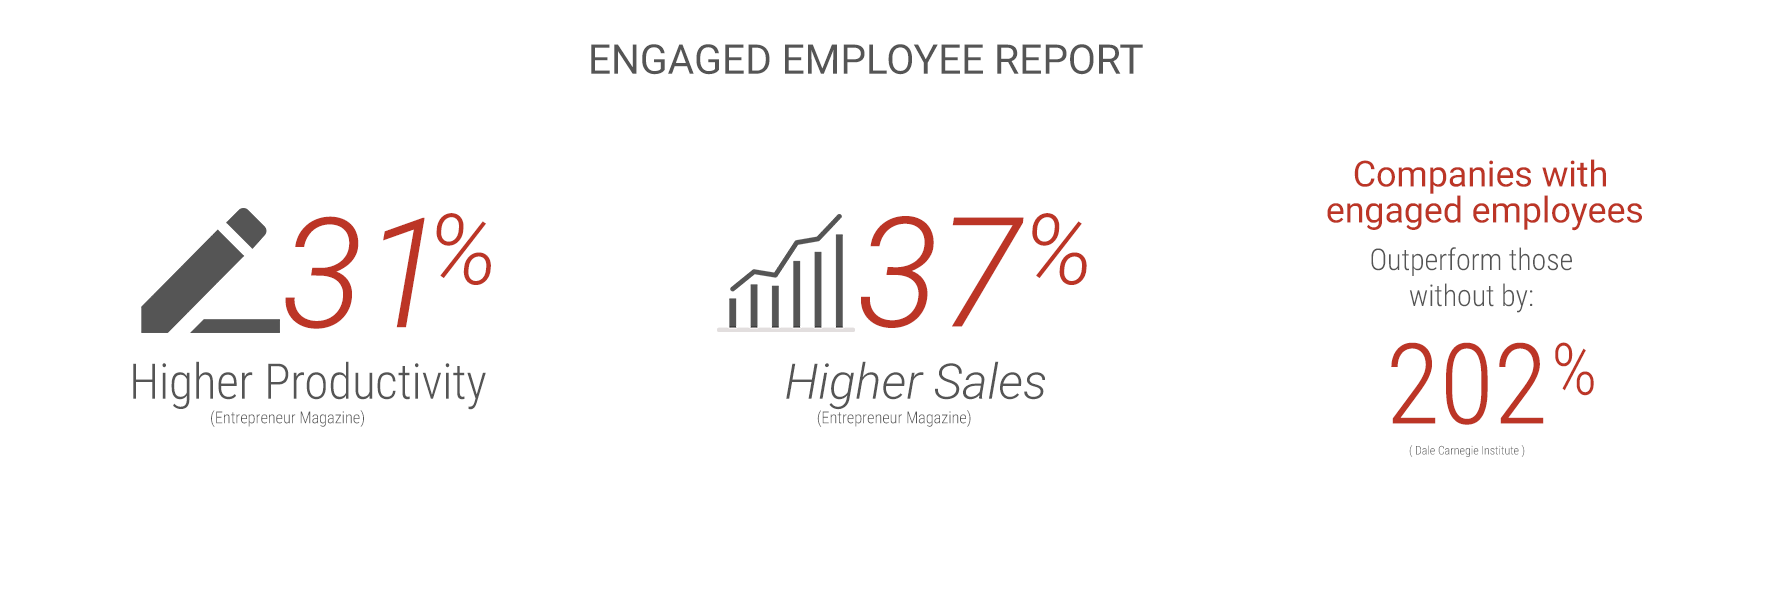 Employee engagement report showing the data how engaged employees outperform in an organization